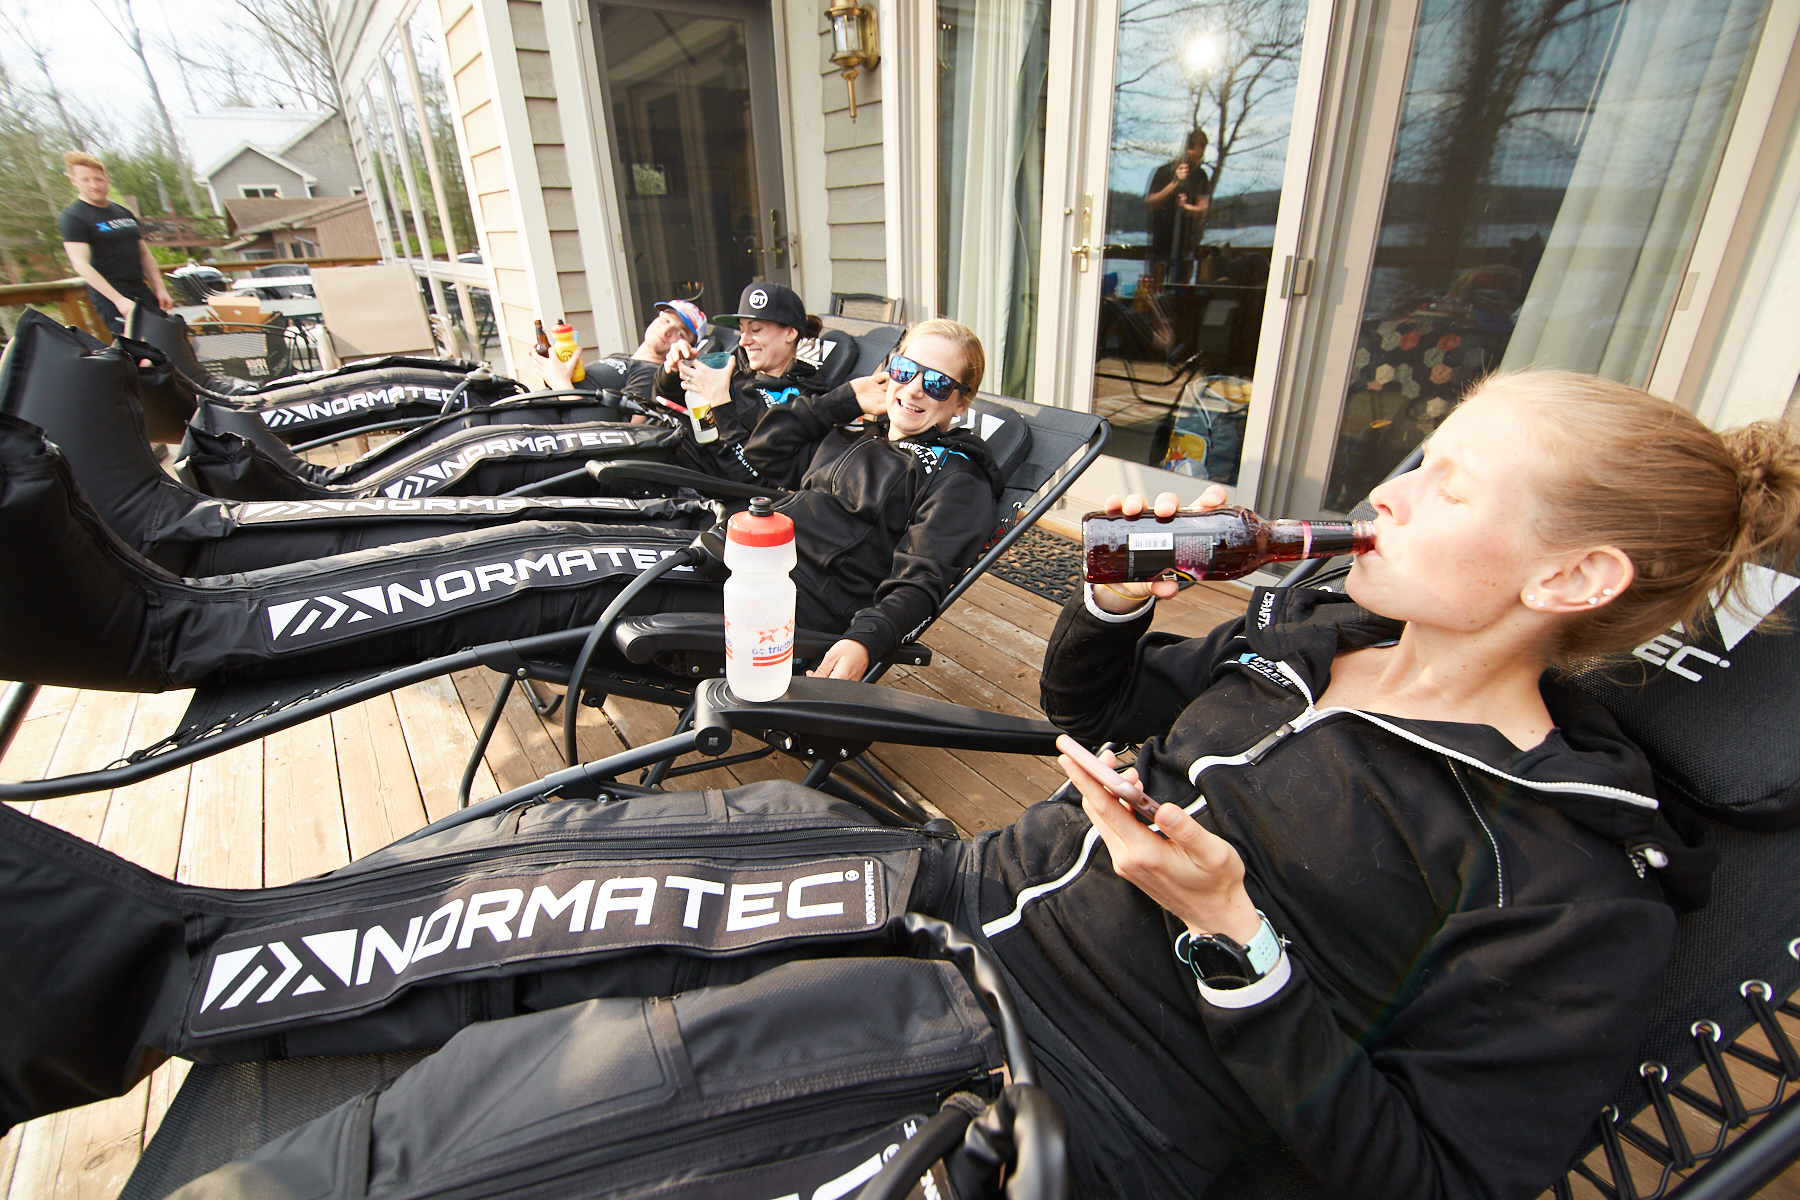 2018 May Happy Hours! It's NORMATEC TIME!